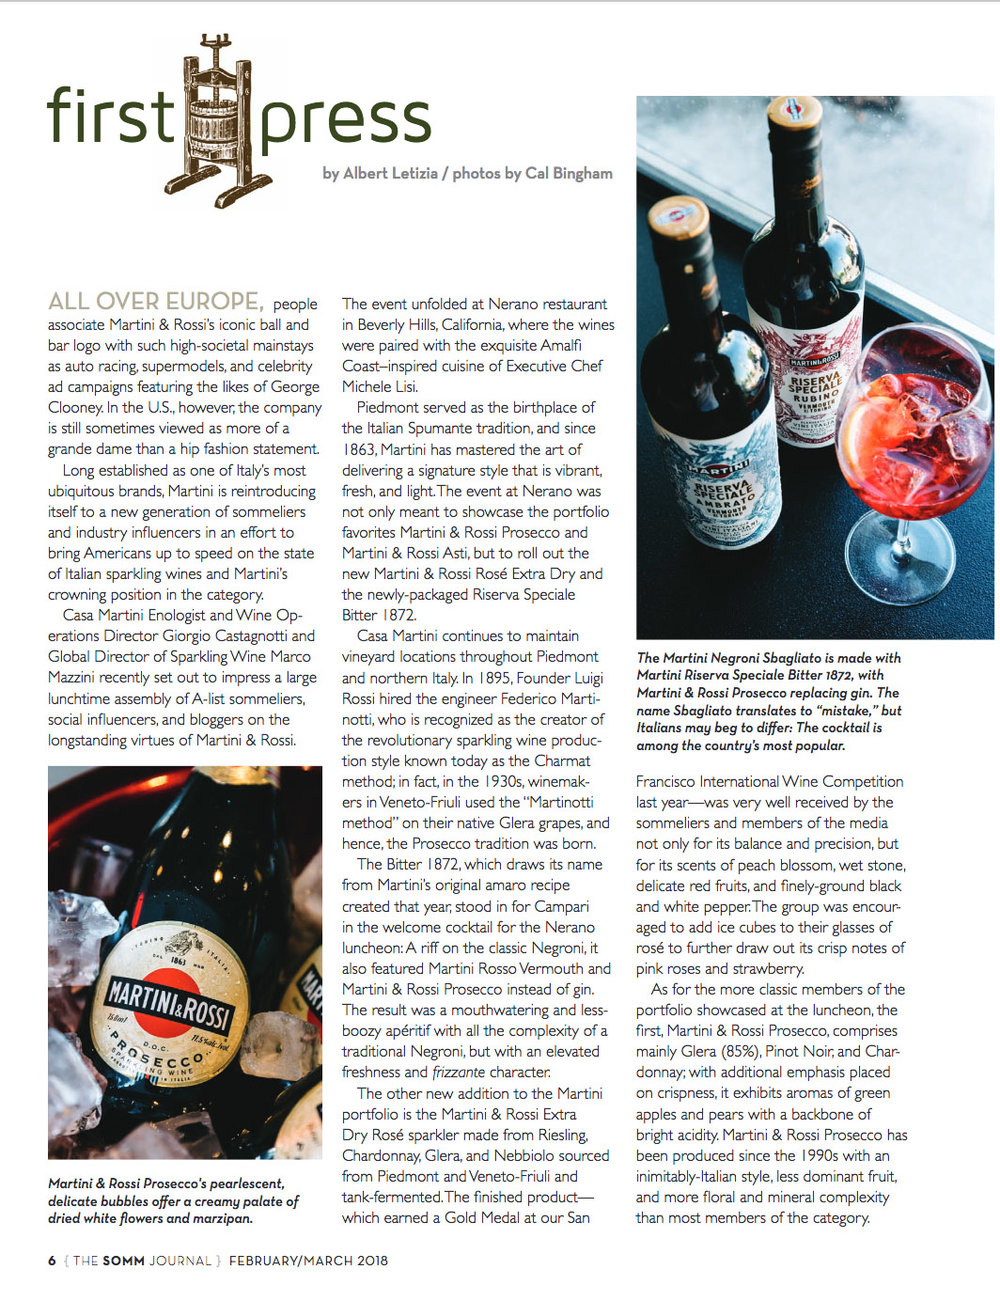 The SOMM Journal, February/March 2018